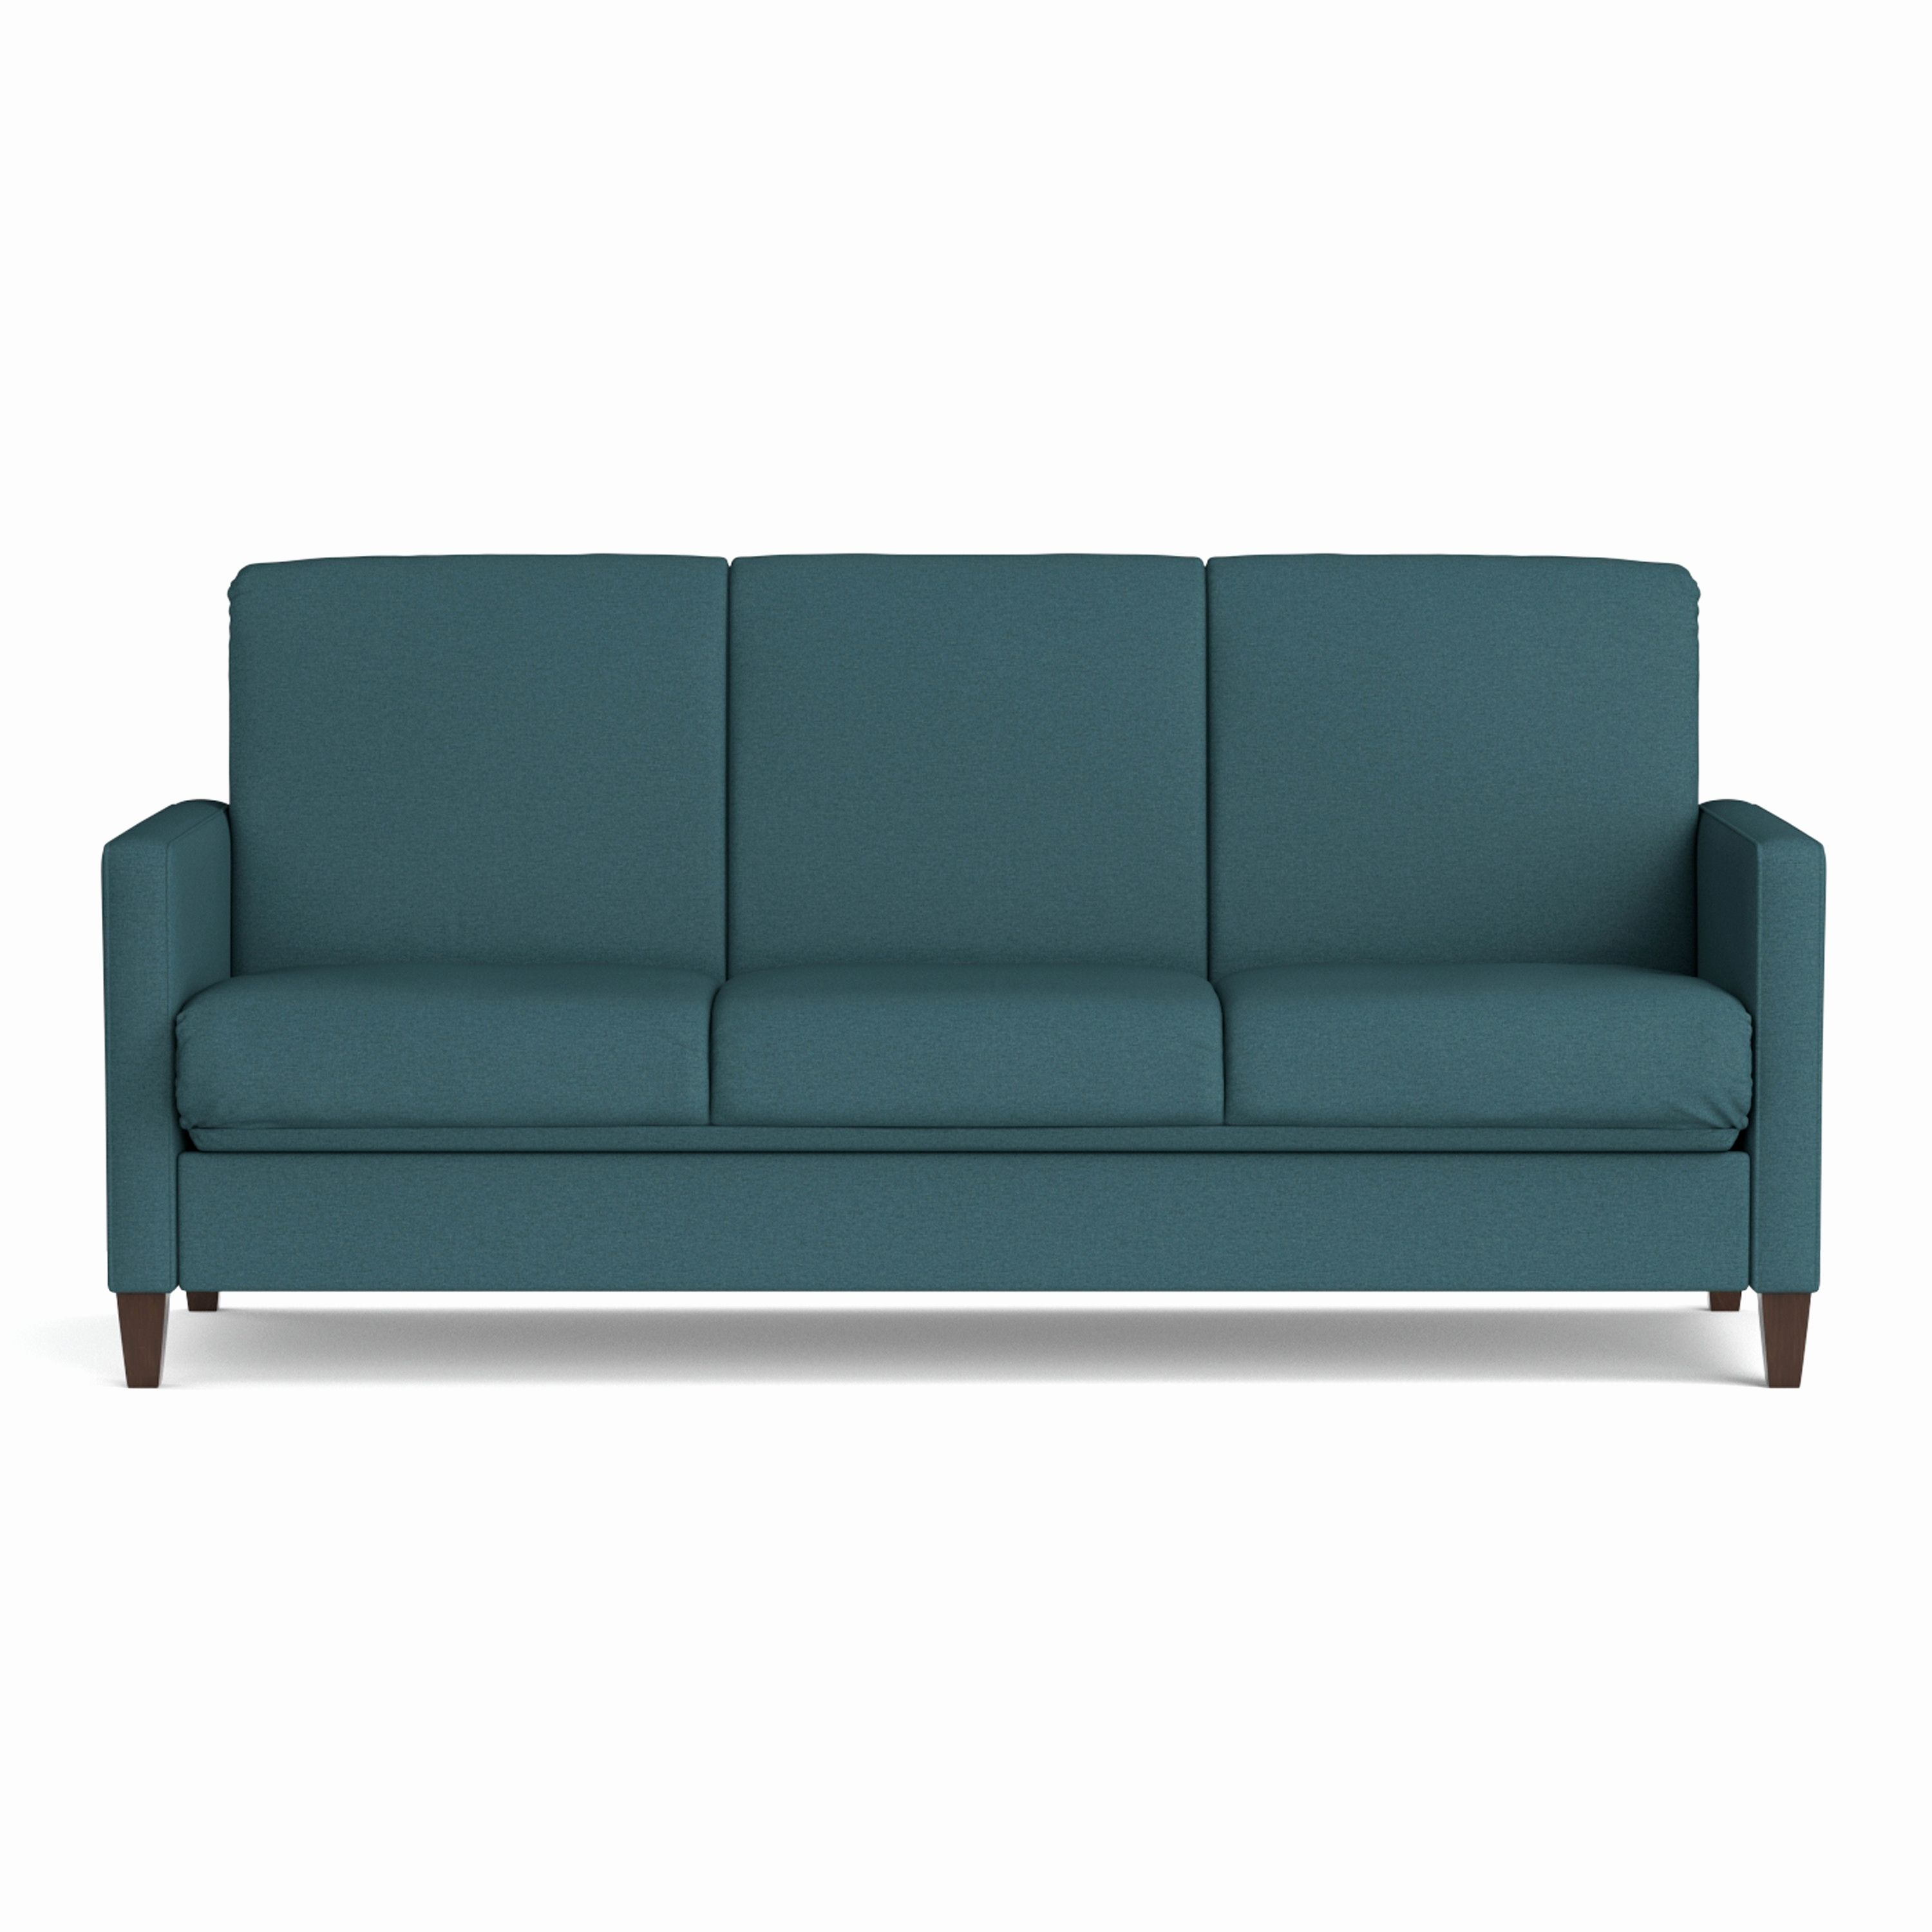 Sears Living Room Couches Pics Of Rooms With Fireplaces Luxury Sleeper Sofa Futon Image Lovely Bed Sets At